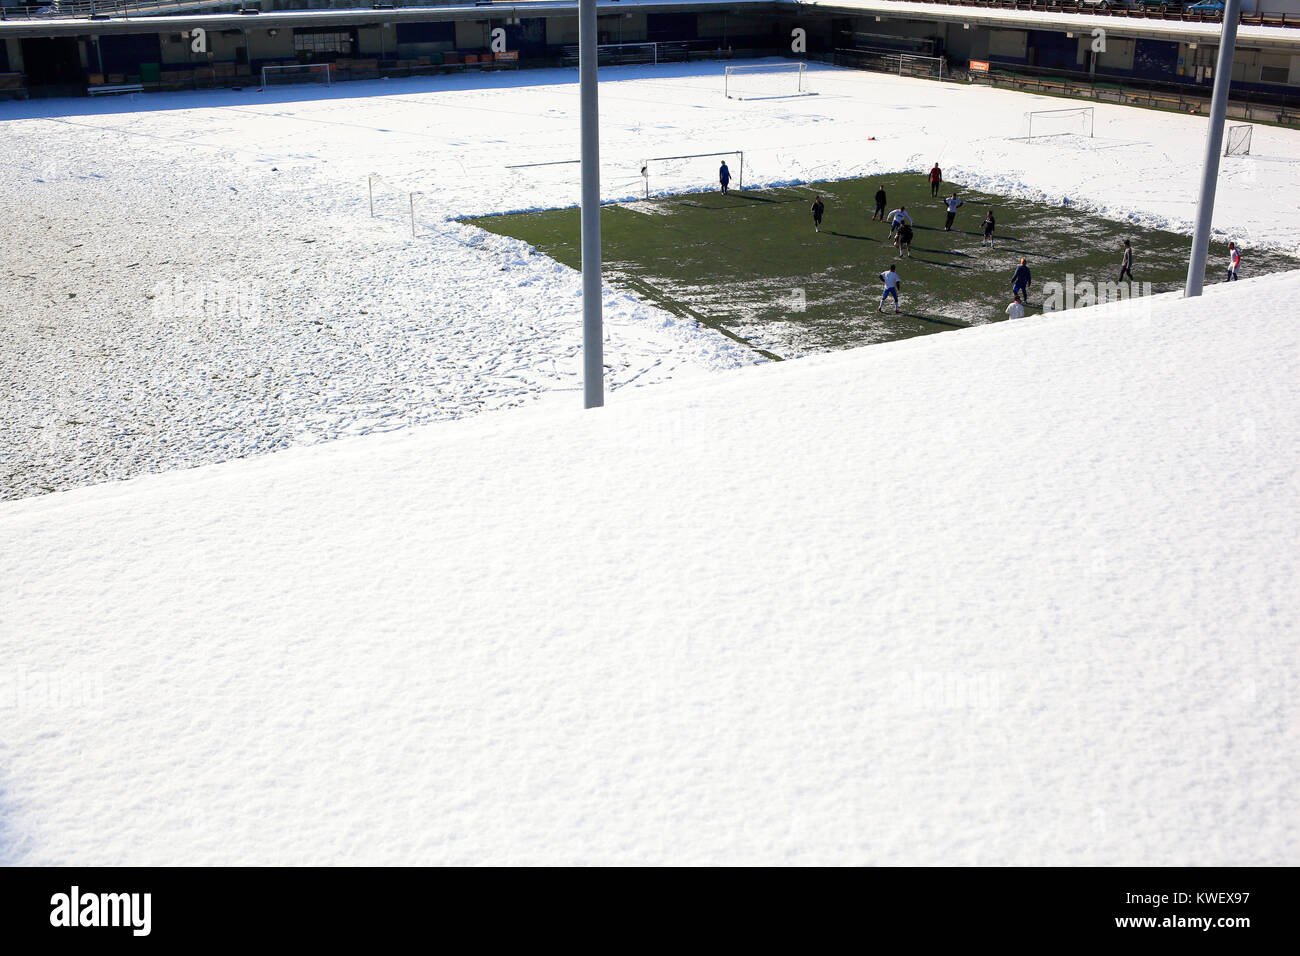 Soccer match in winter on snow plowed sport field . - Stock Image